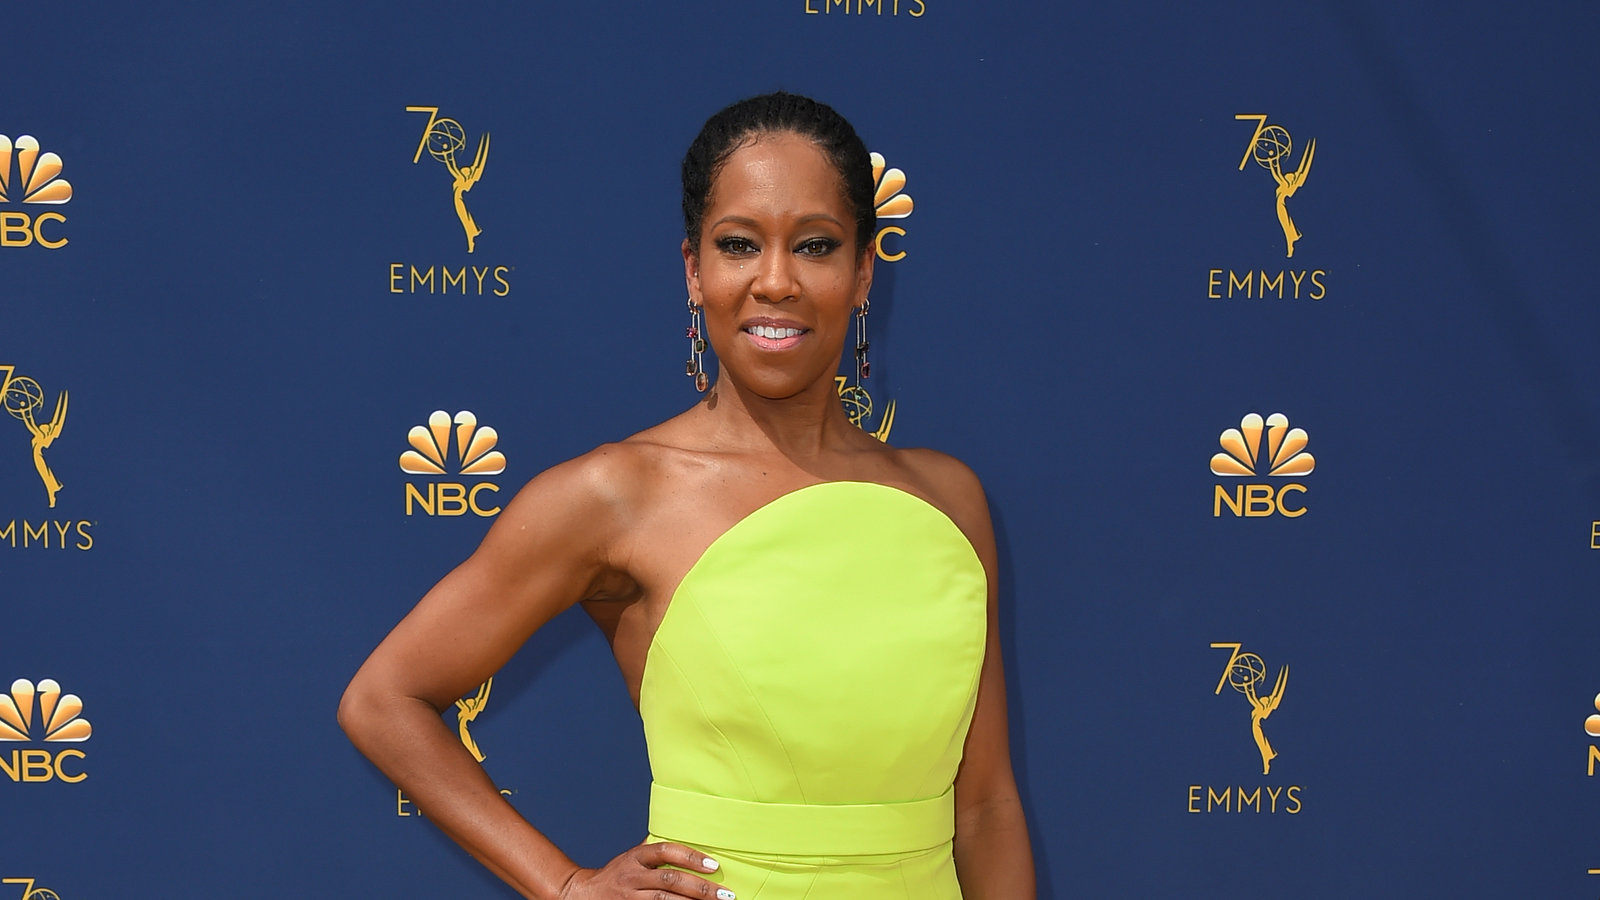 Emmys Red Carpet 2018 The New York Times